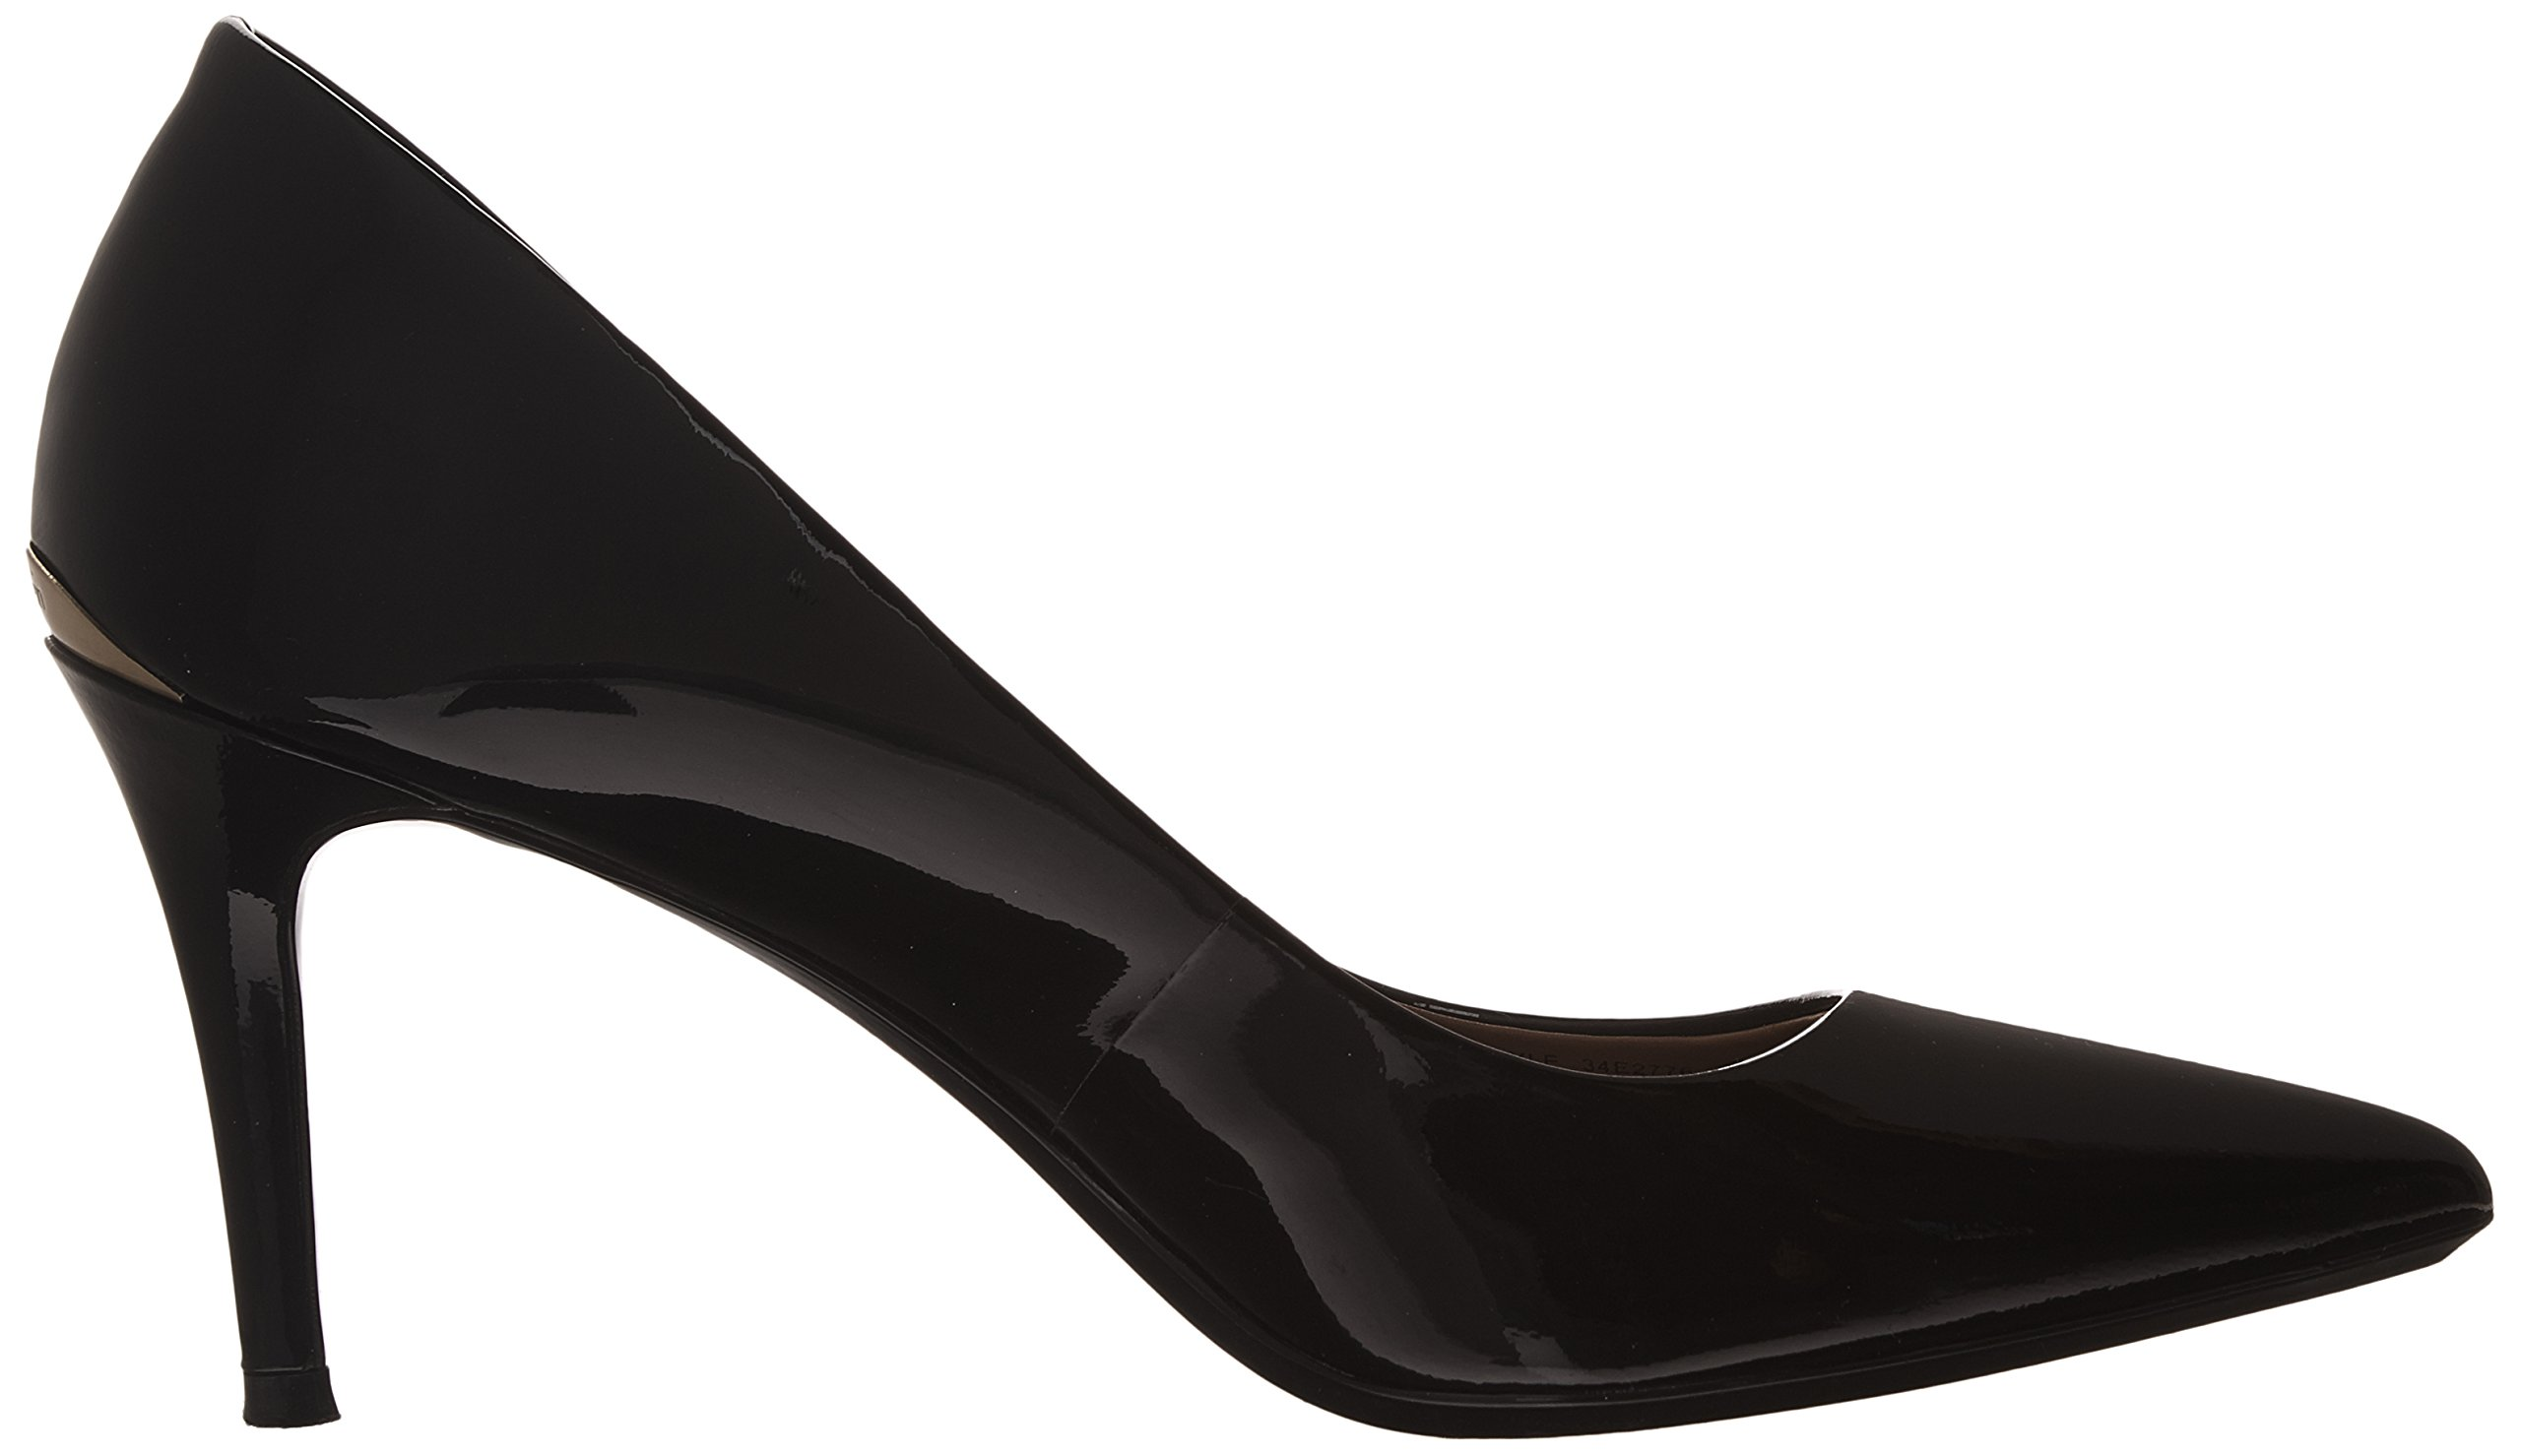 Calvin Klein Women's Gayle  Dress Pump,Black Patent, 7.5 M by Calvin Klein (Image #7)